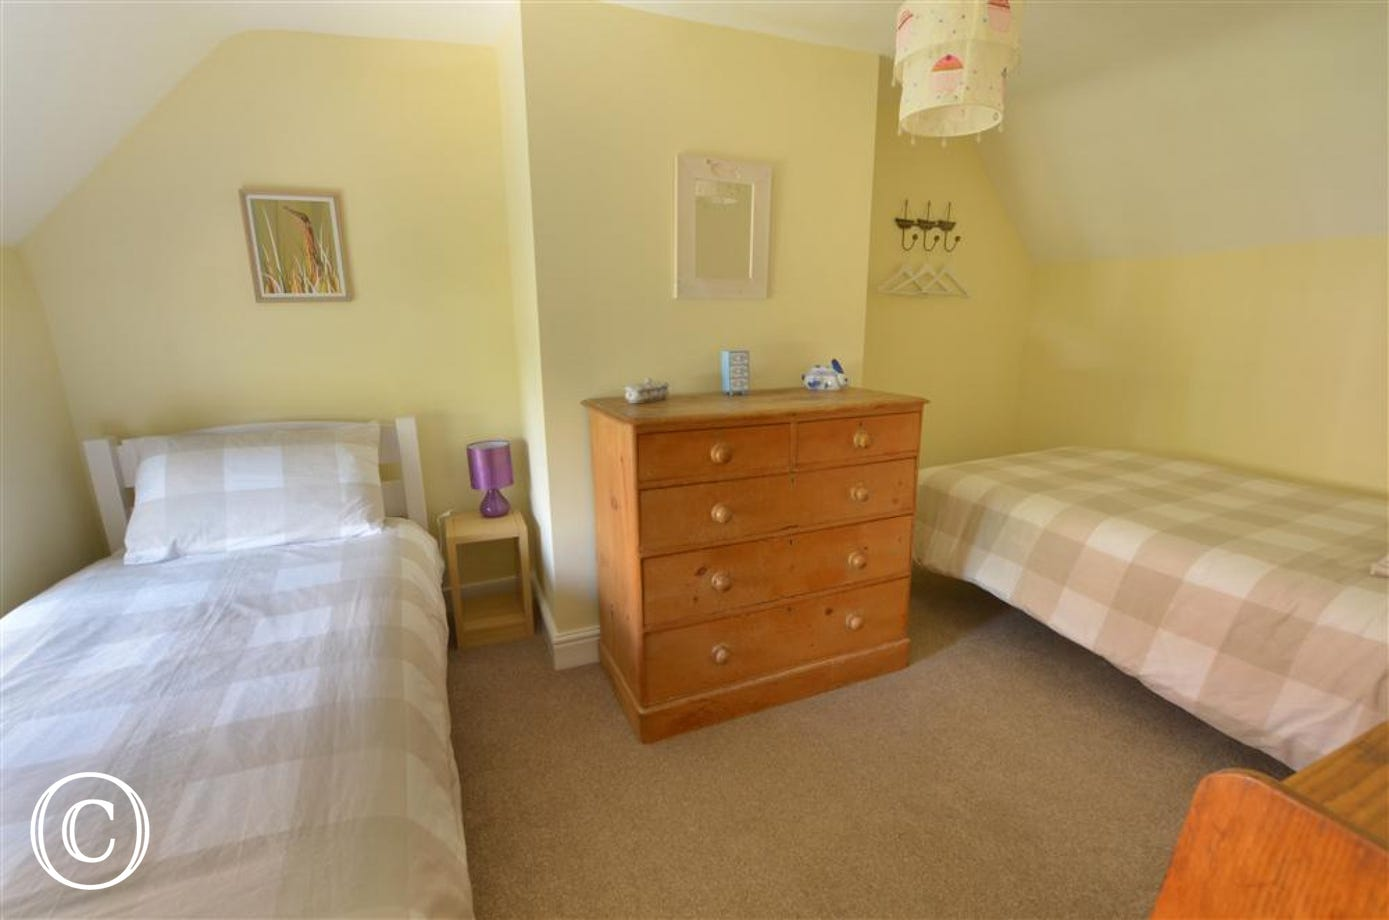 View of twin bedded room, bed positioned either side of room with pine chest of drawers in front of chimney breast, room painted in cream with fresh bedlinen in a beige and white large check design.